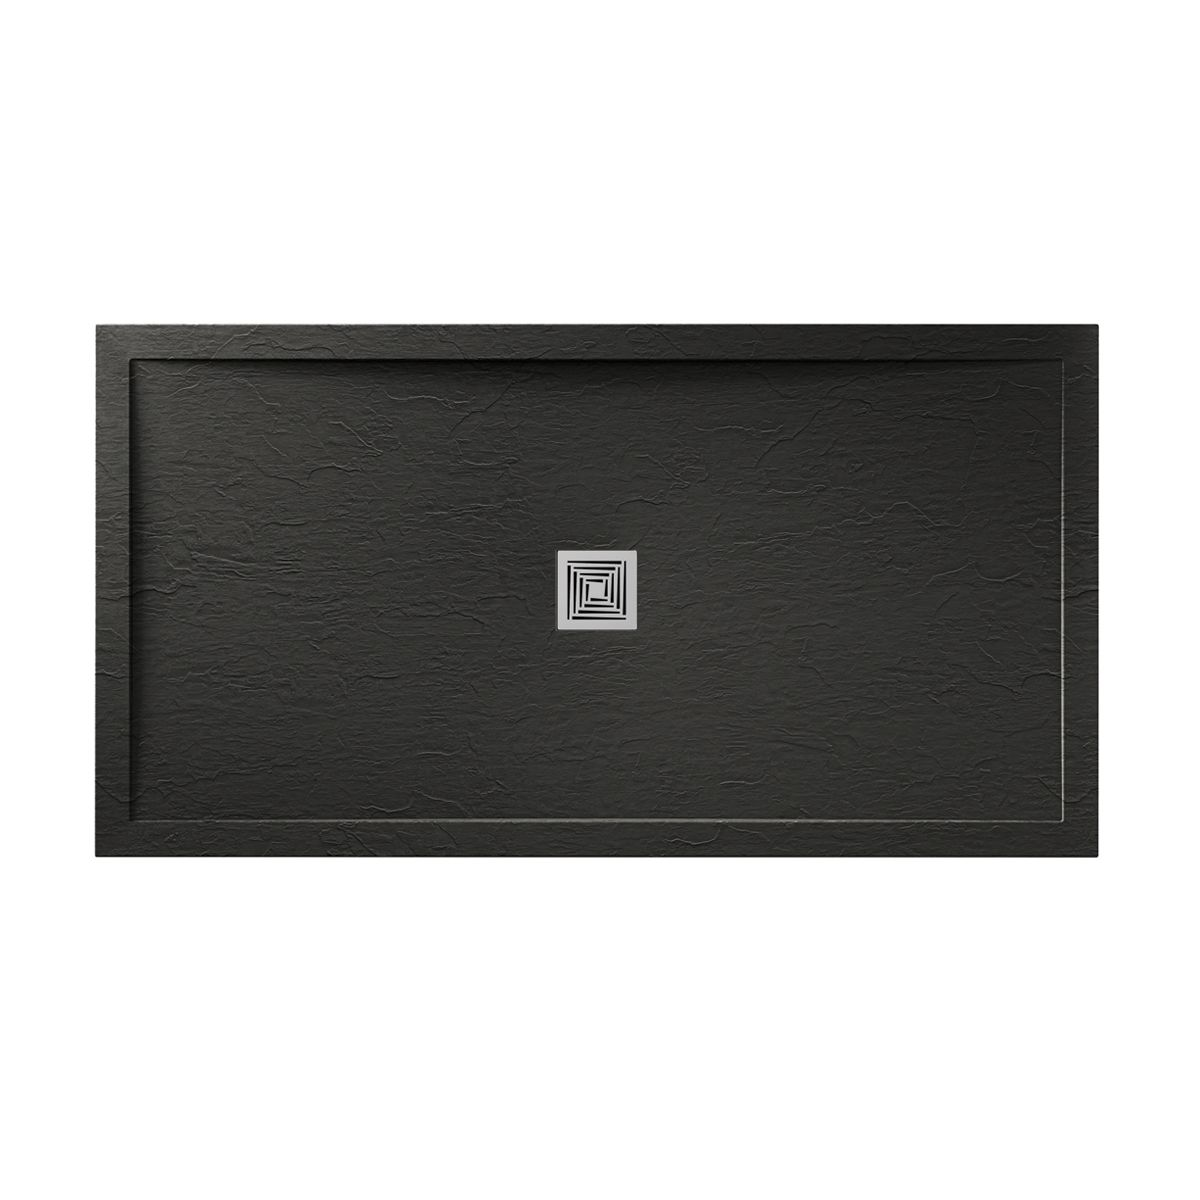 Aquadart Black Slate Shower Tray 1400 x 700